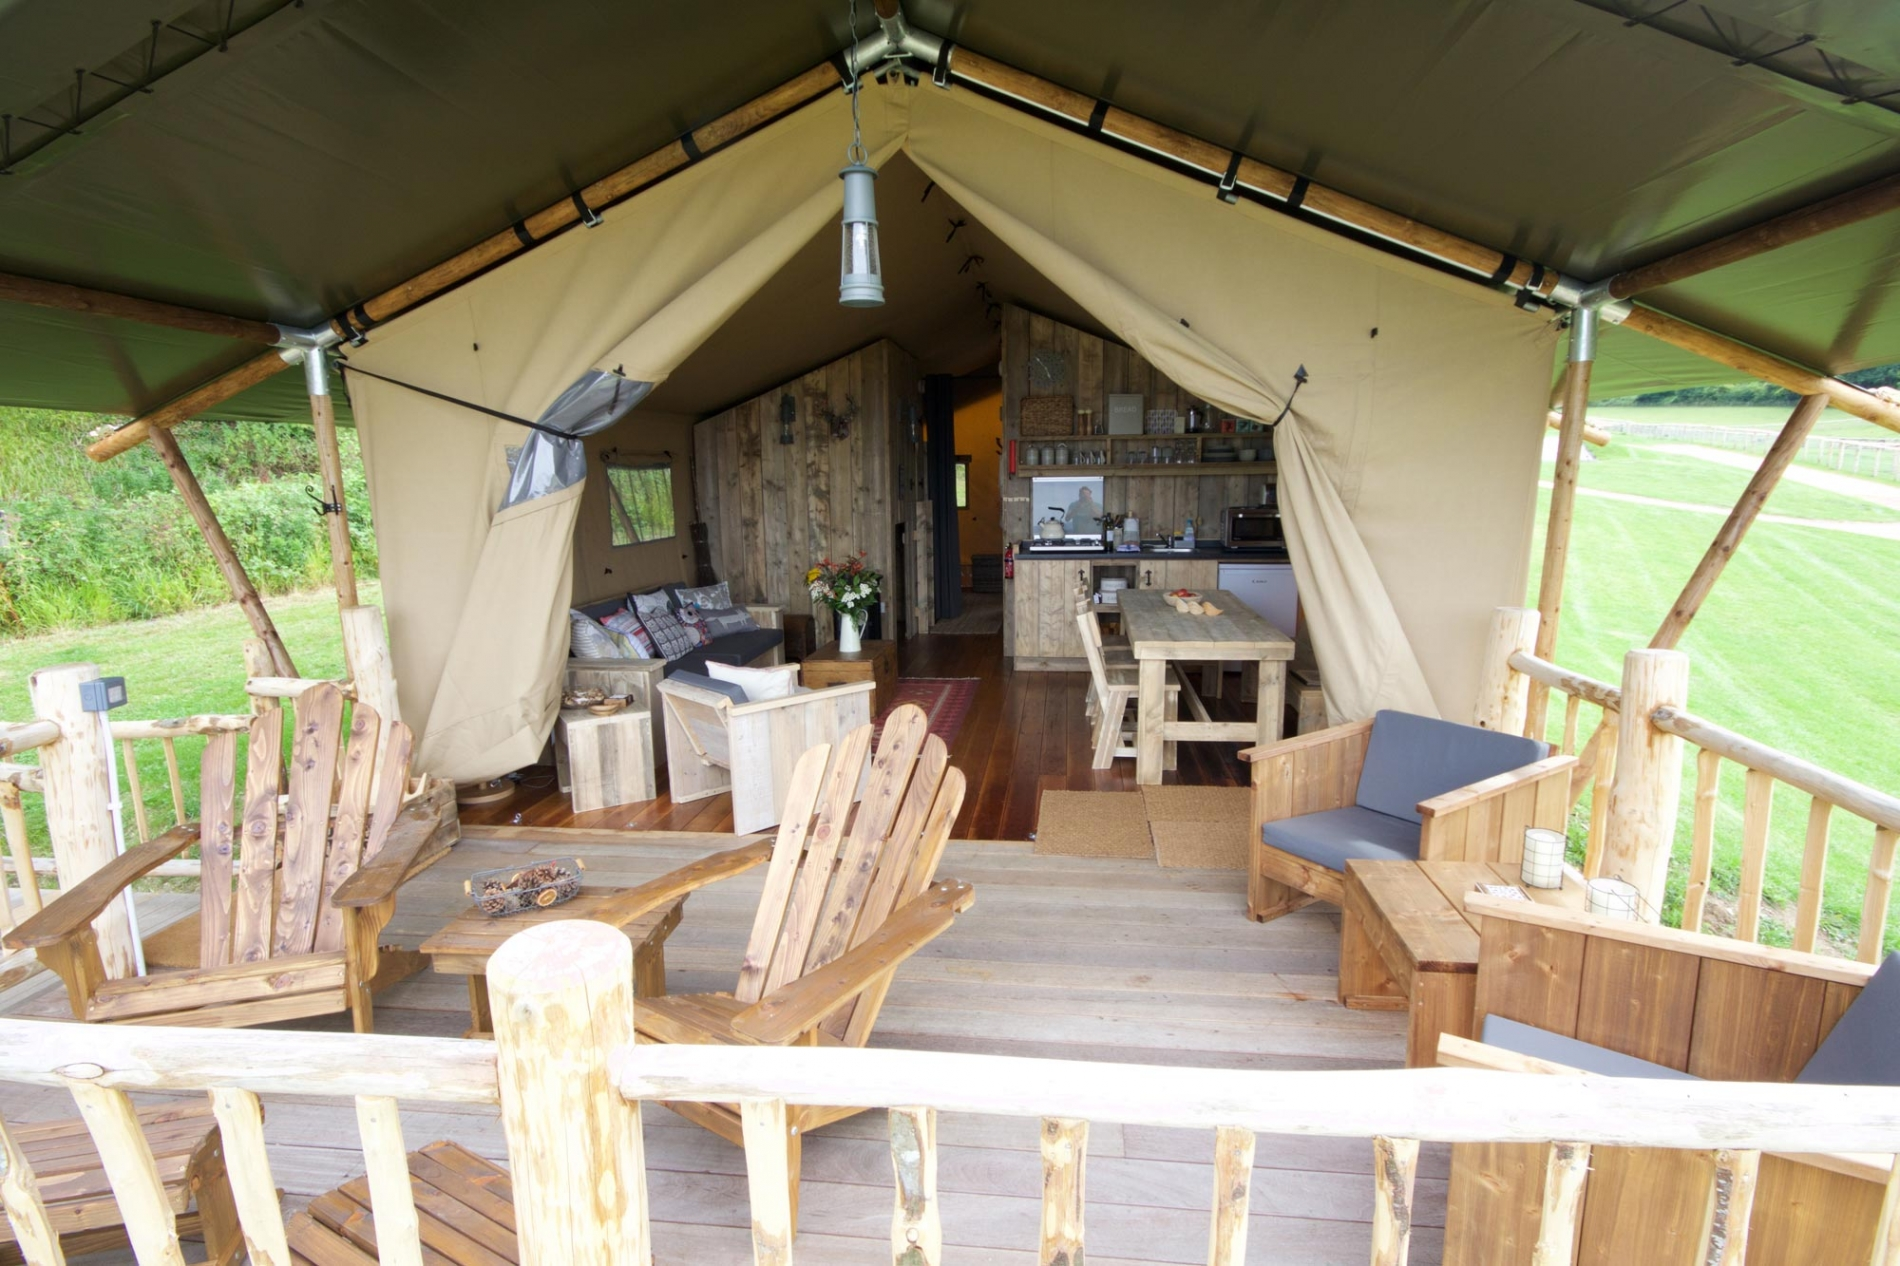 Safari Lodge Glamping Holidays in Dorset